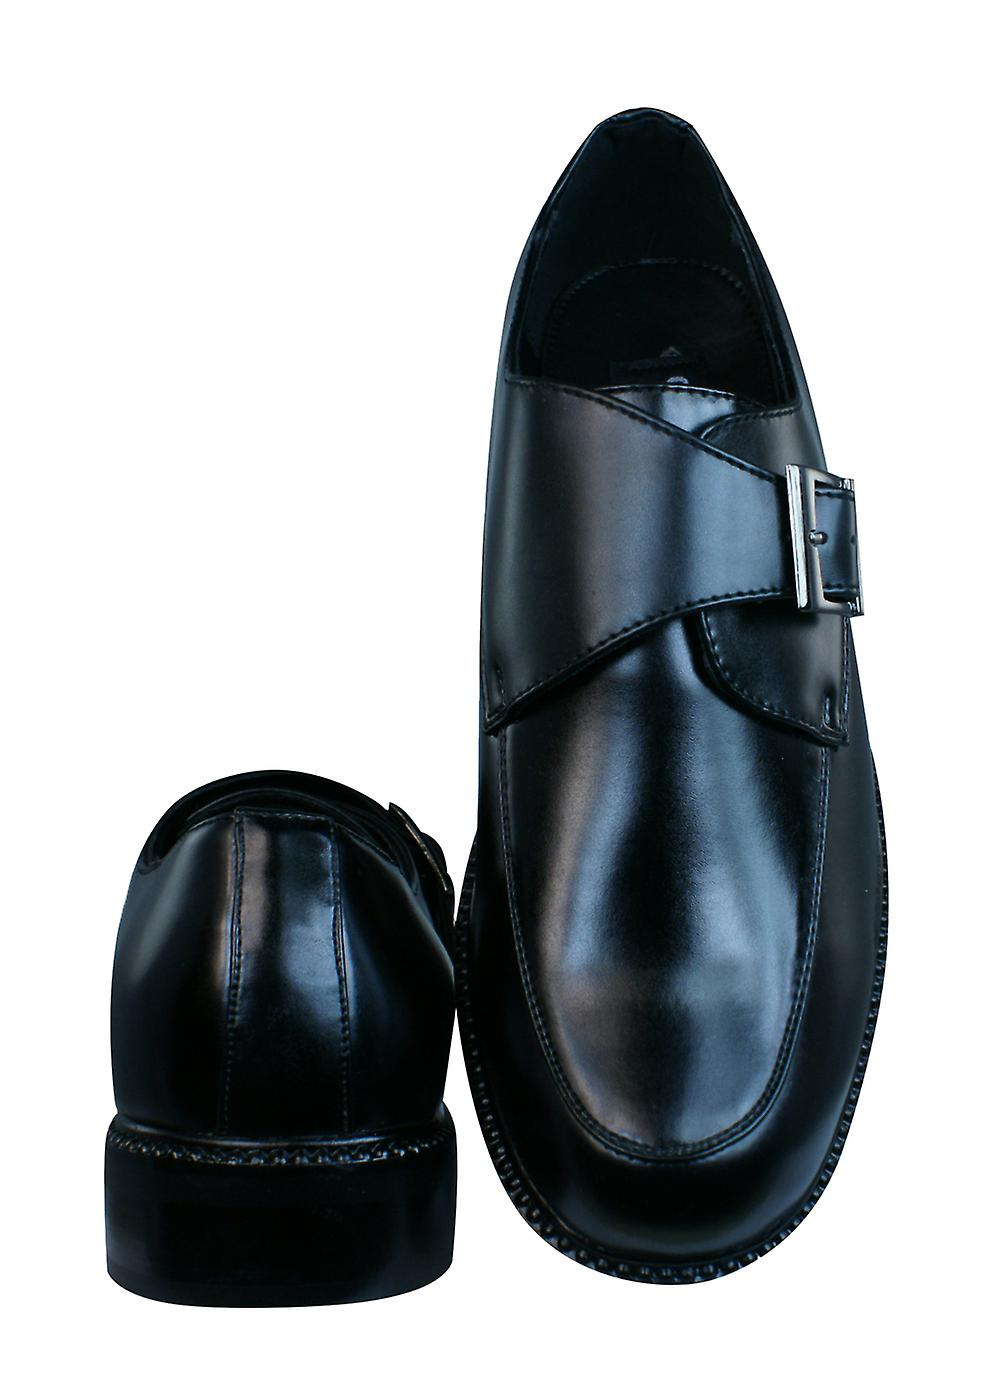 On and Off Mens Slip on Shoes - - - Black d512e9